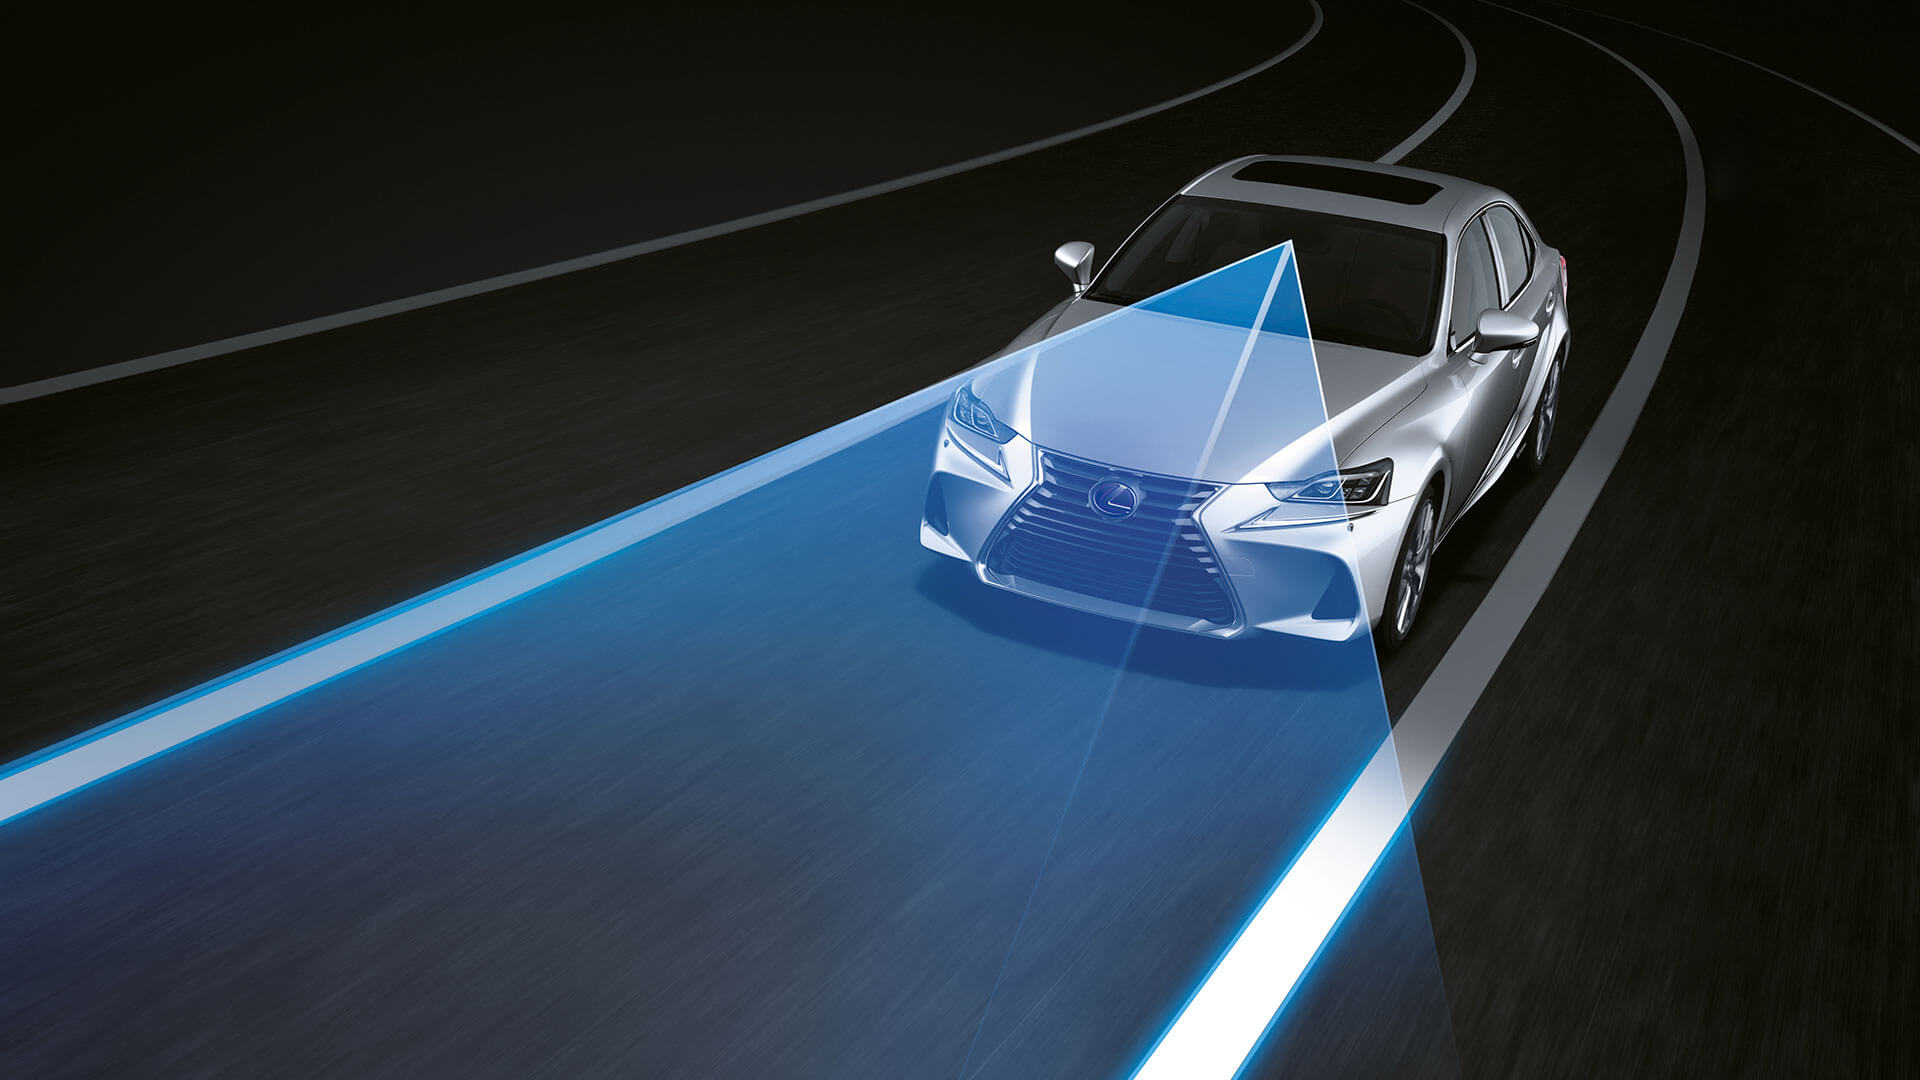 2017 lexus is 300h features high beam